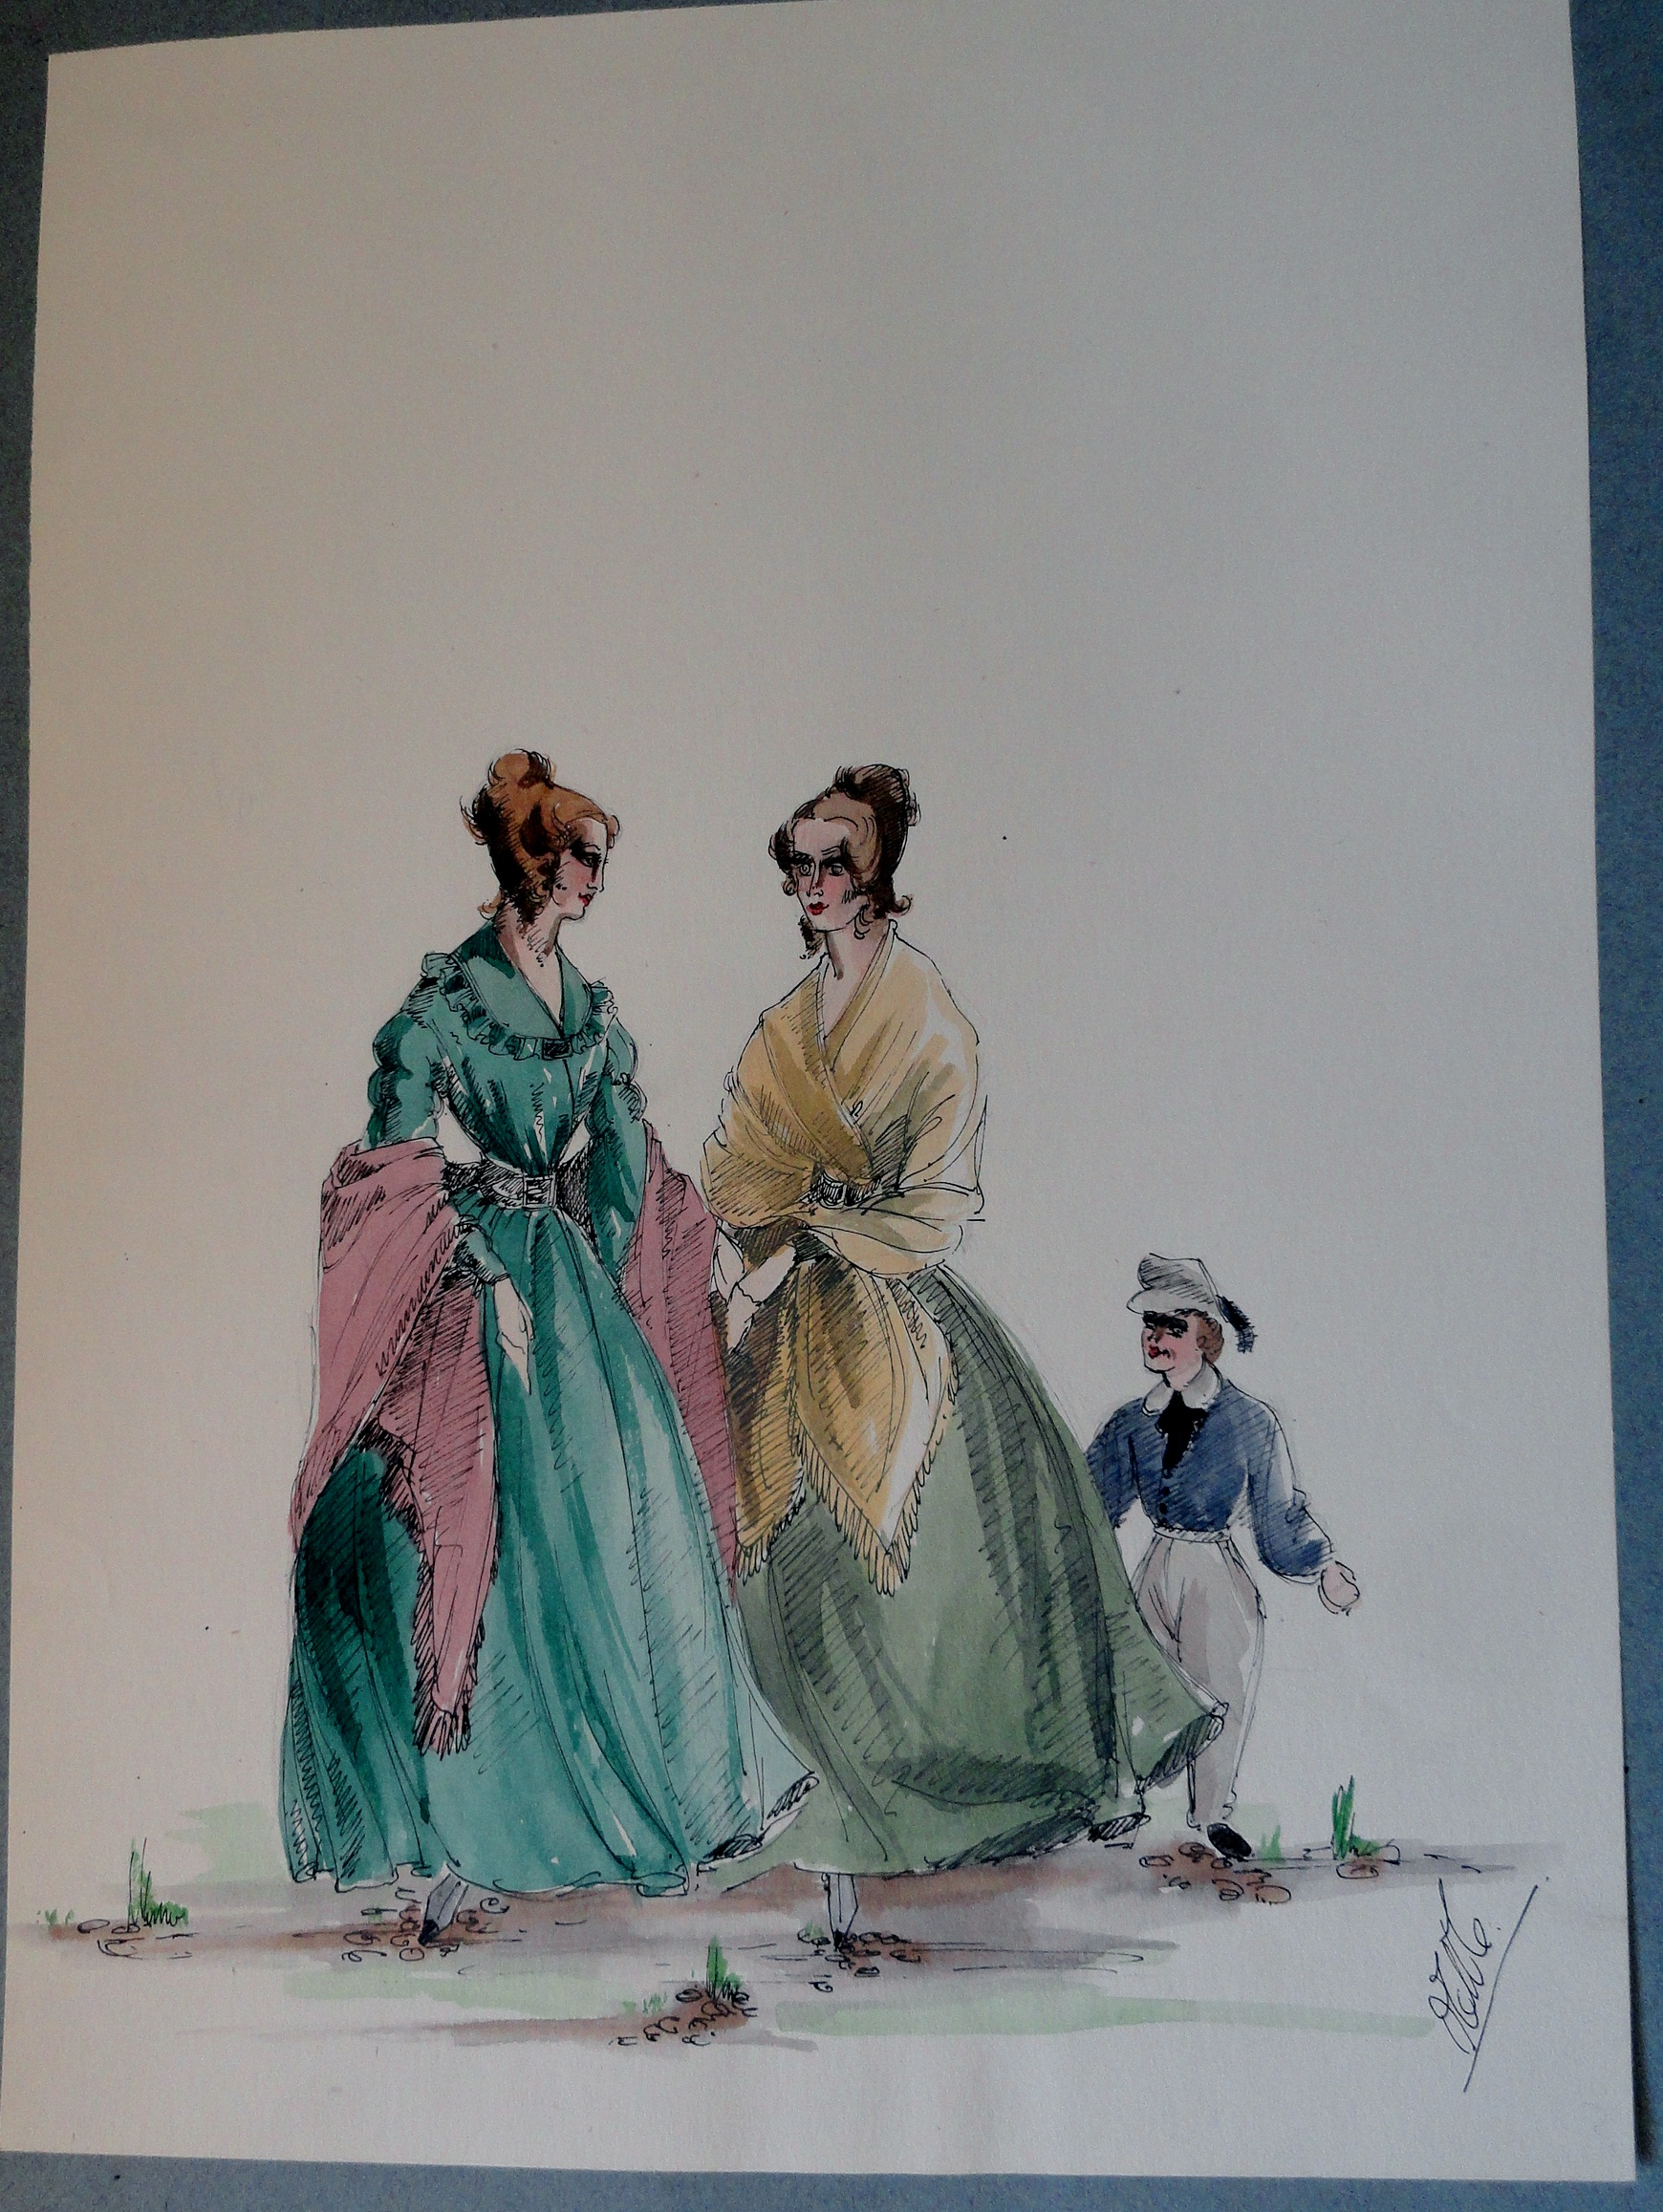 Rachel and sister with young boy in cap. Pen and Ink and Watercolor. From the Rachel Portfolio by Owen Hyde Clark. $150.00.